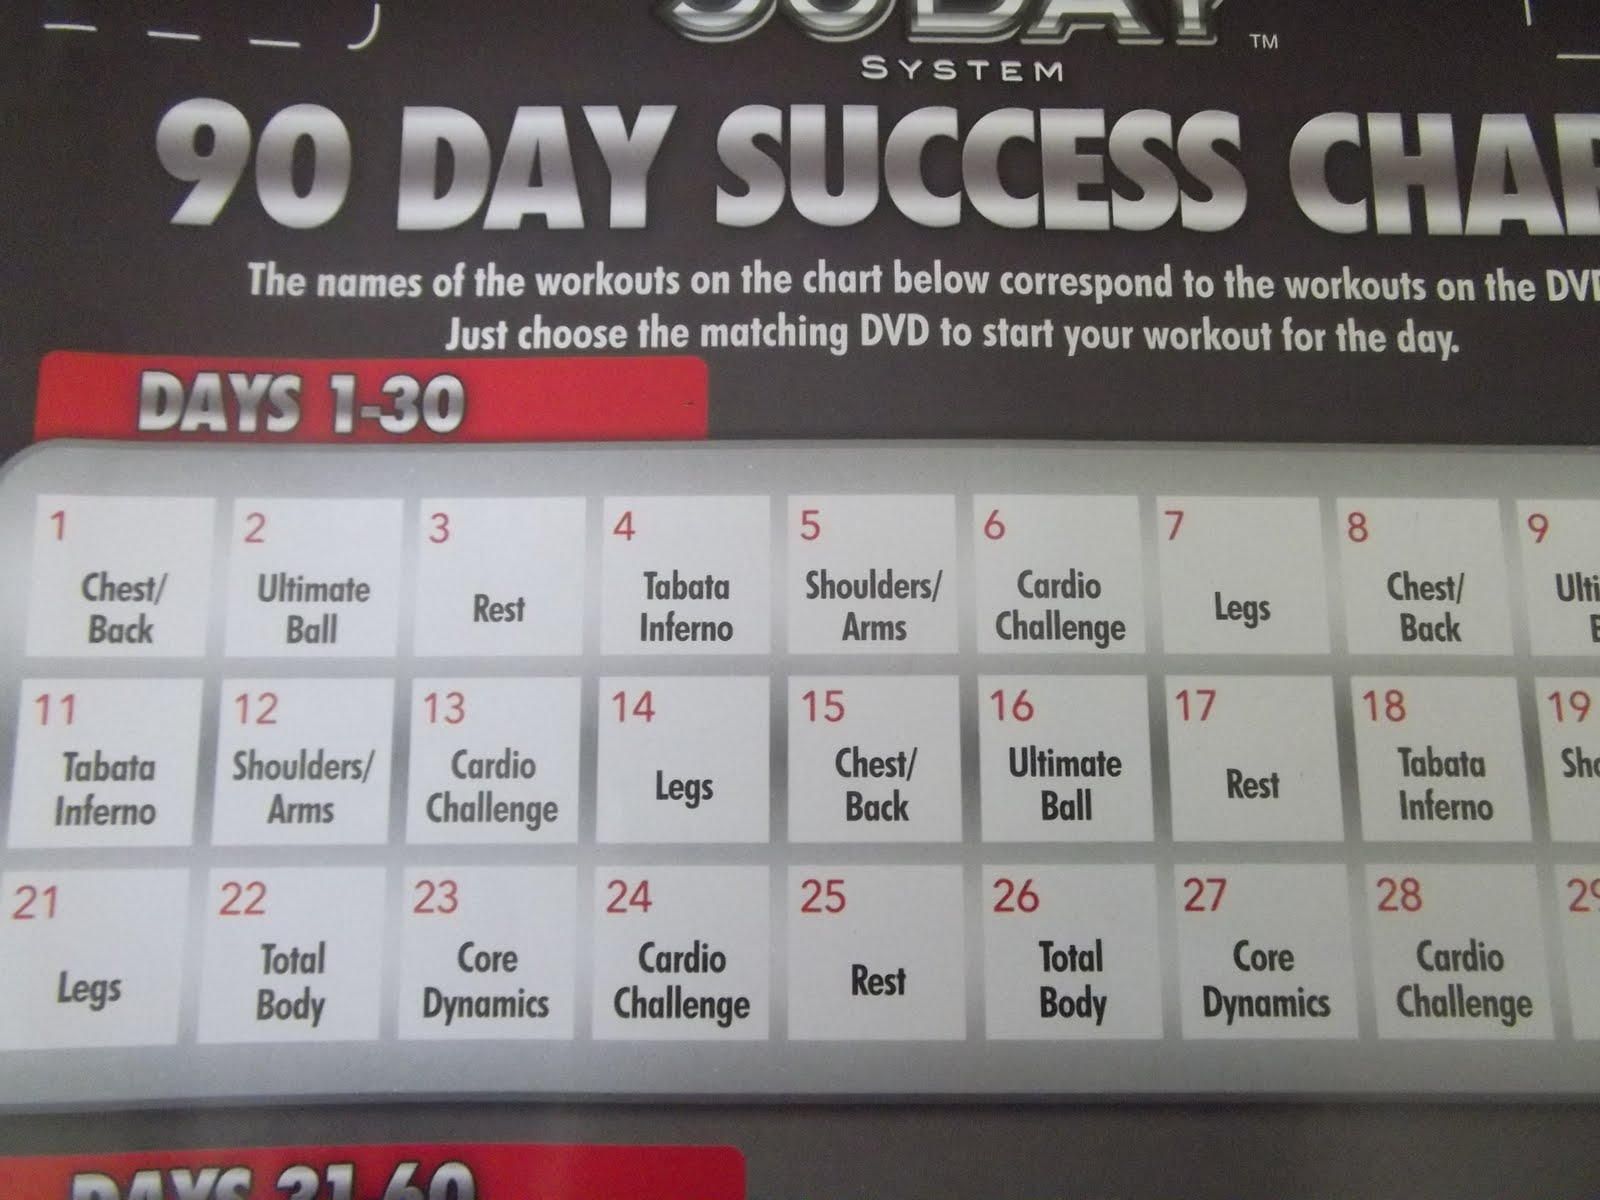 Have you tried supreme 90 day system p90x or insanity did you have